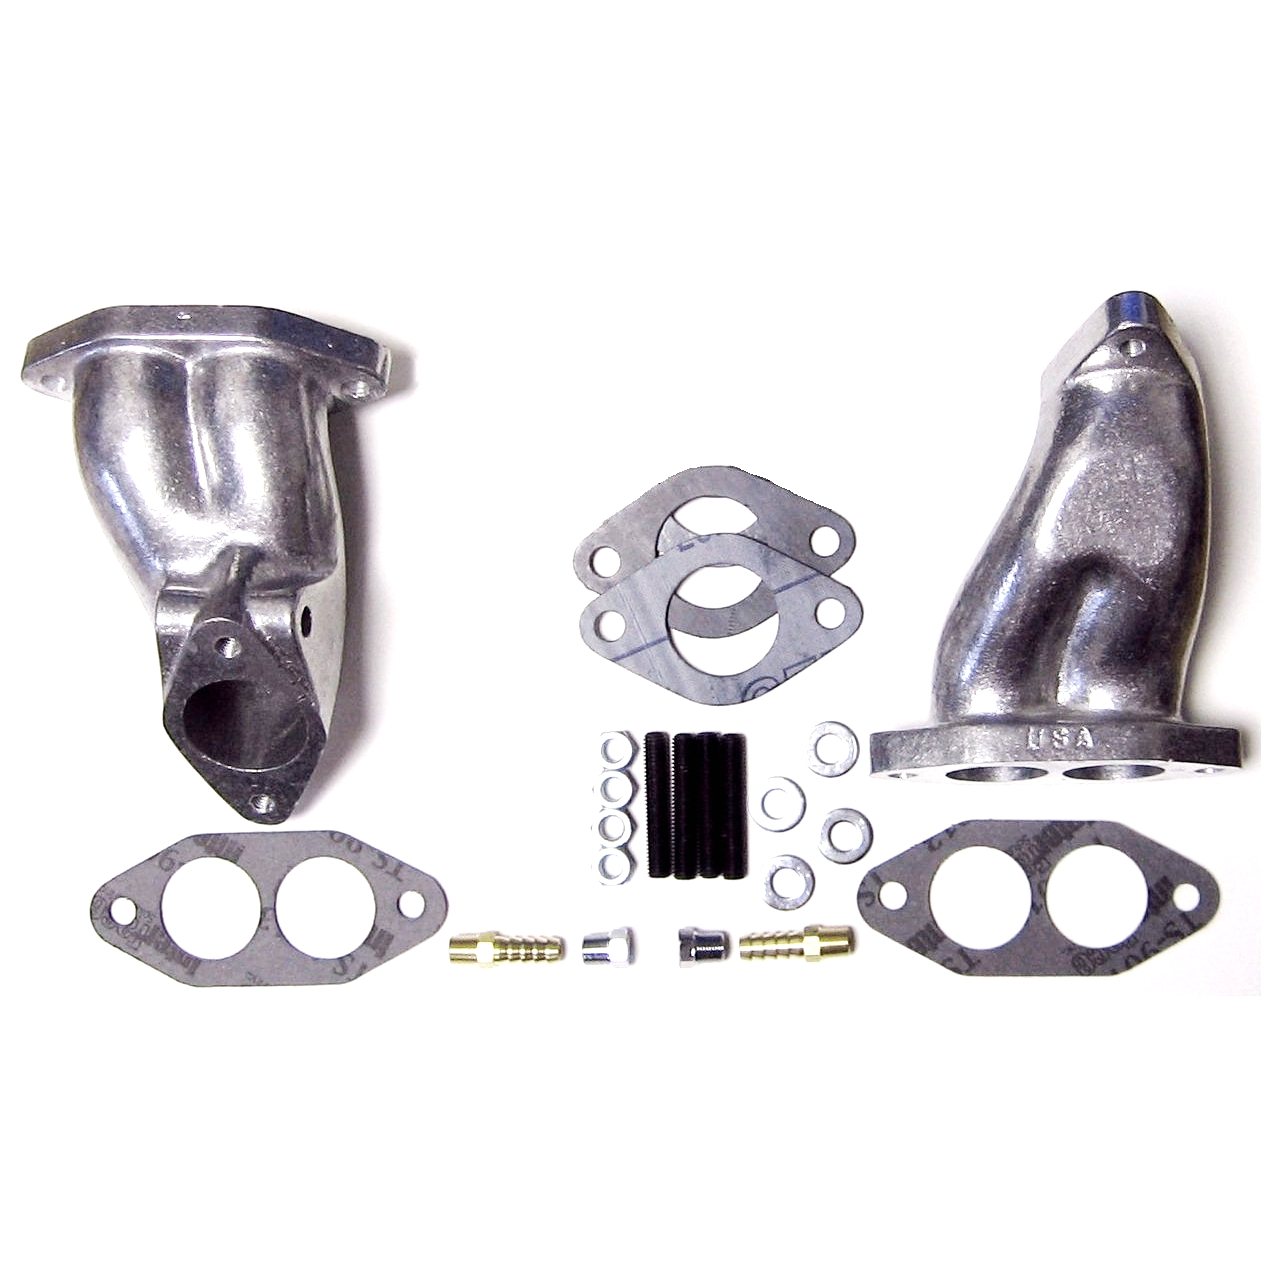 AIR-COOLED VW T1 DUAL-PORT-KOMBRO-CARB MANIFOLD-KIT-CB PERFORMANCE